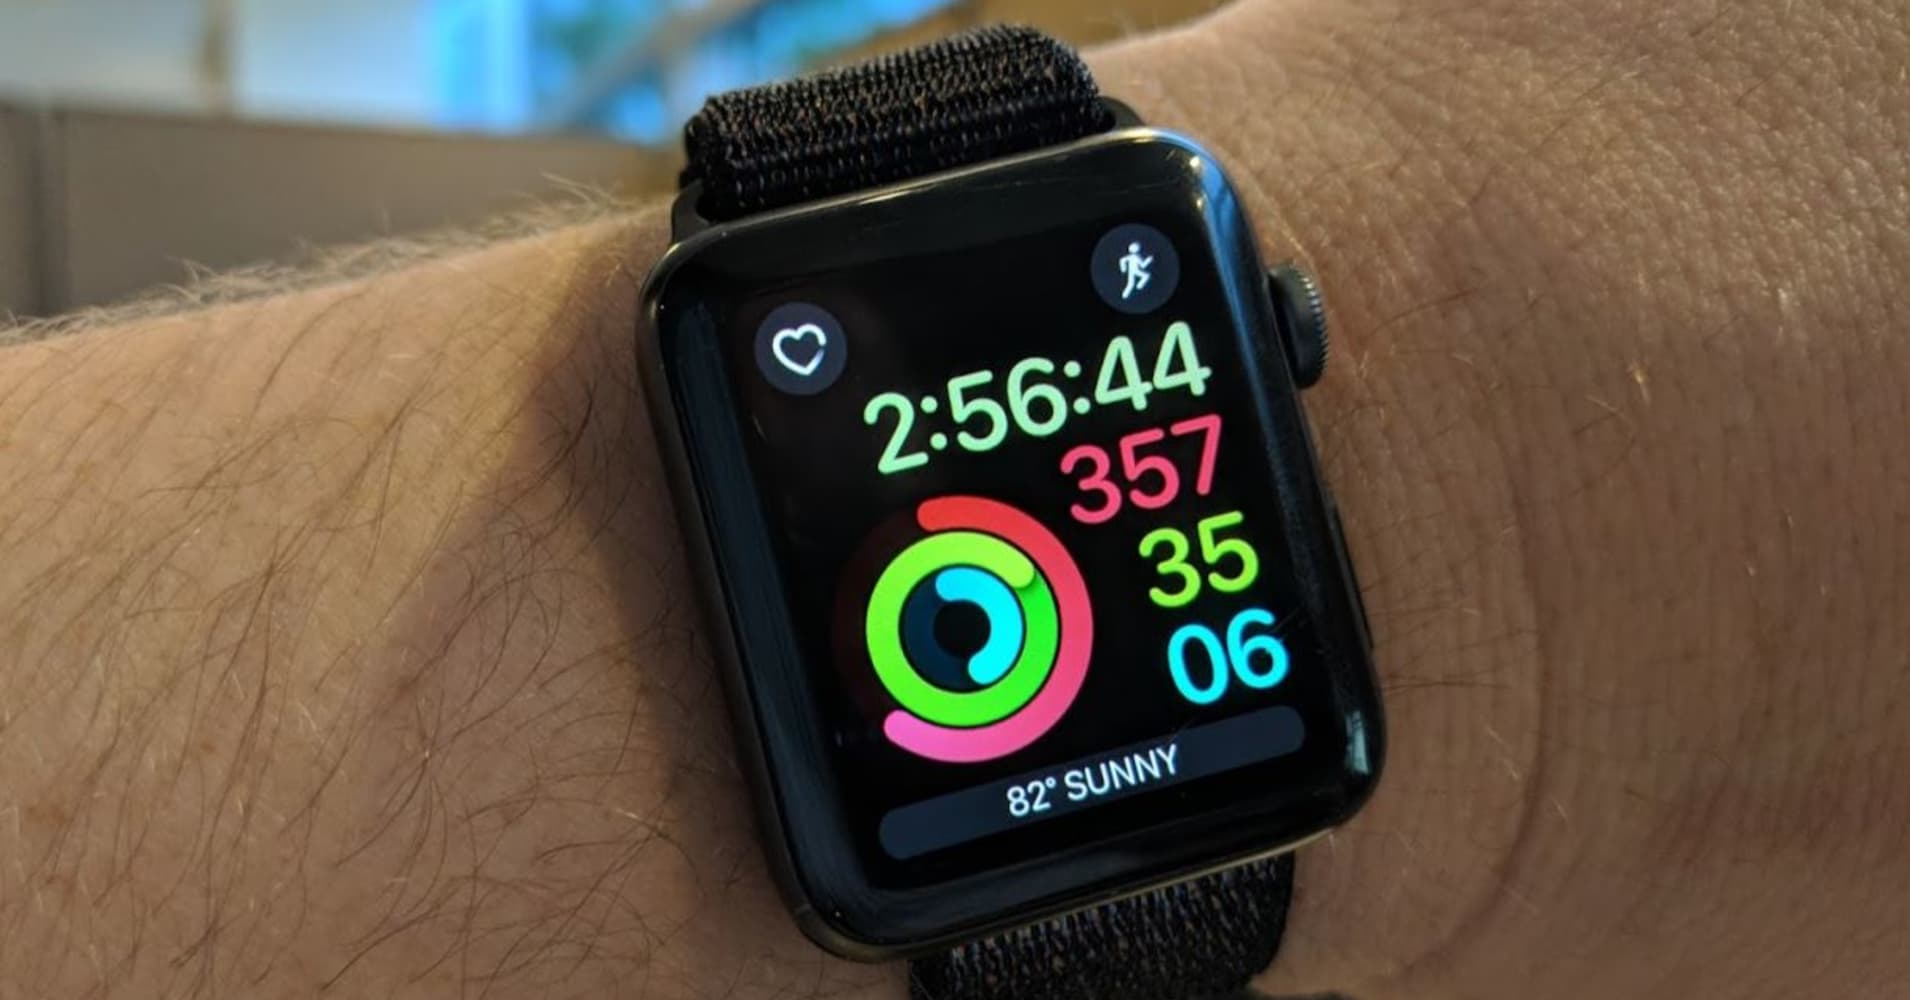 Whip yourself into shape by using this Apple Watch feature to compete against friends and family